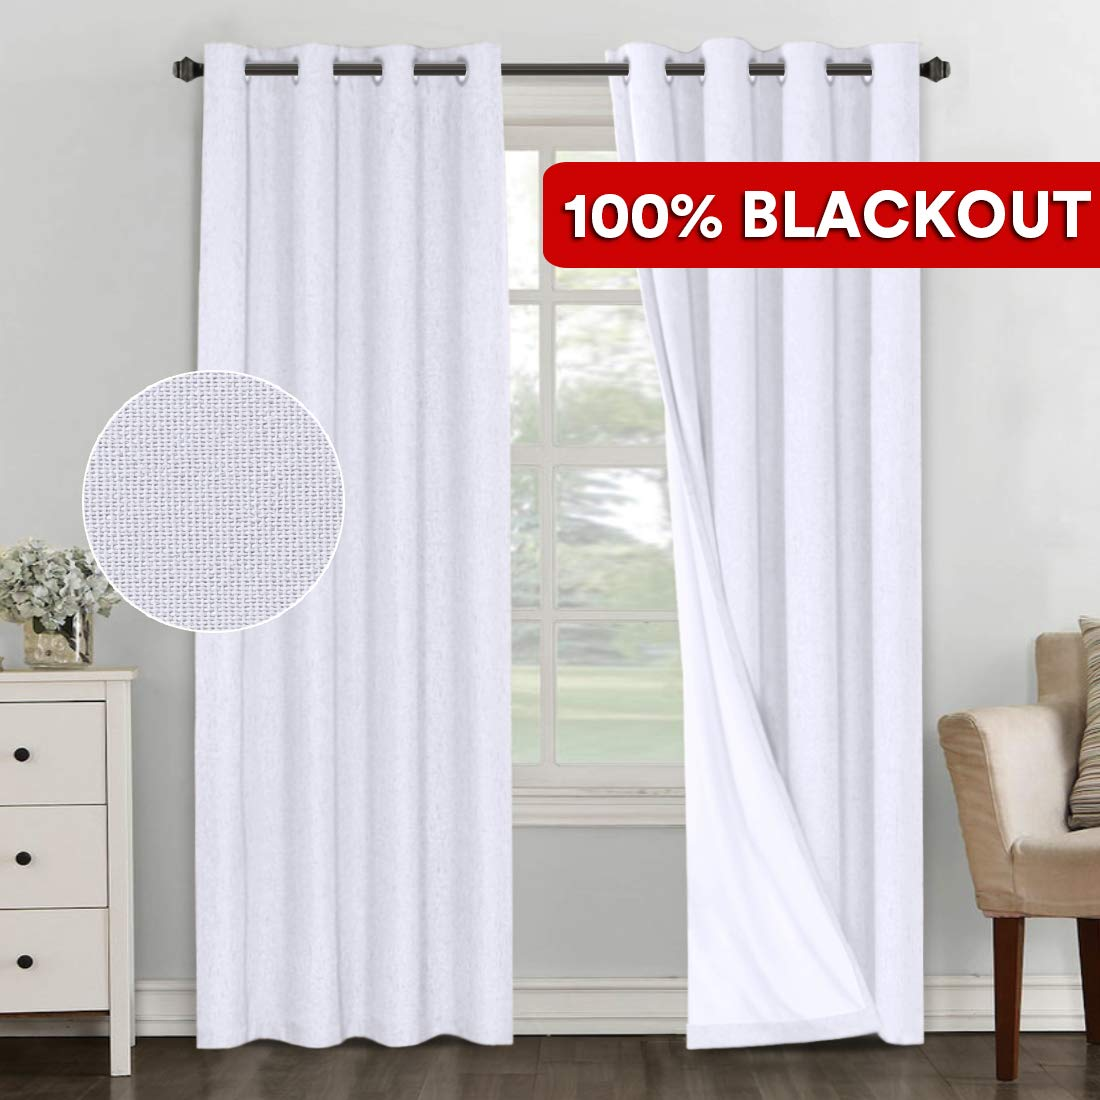 Souldproof Energy Efficient Window Treatment Panels PrimeBeau 100/% Blackout Linen Curtains Grey Heavy-Duty Thermal Insulated Curtain Drapes for Bedroom//Living Room 84 Inches Length